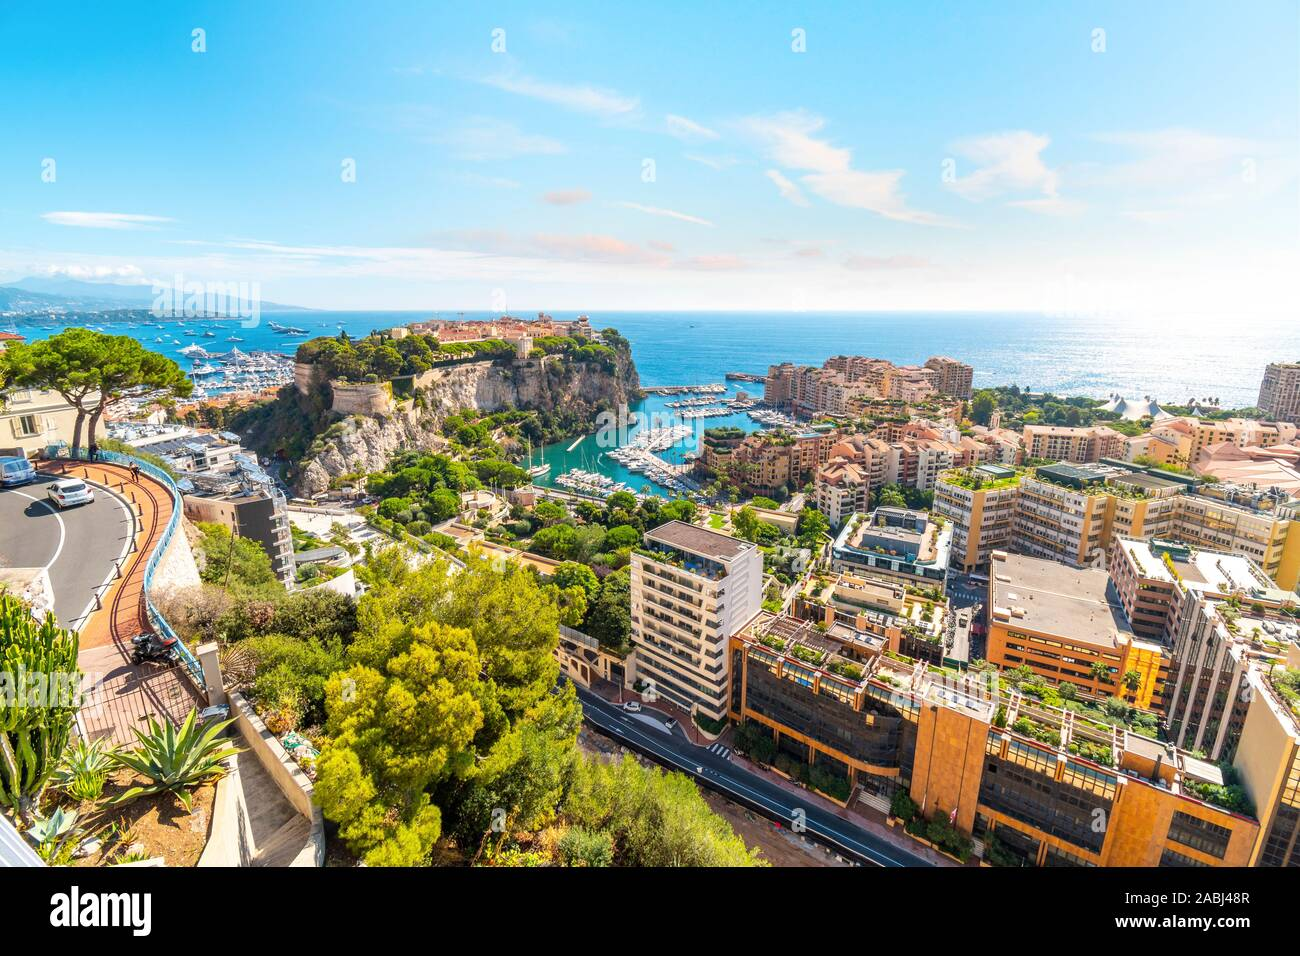 View of the Mediterranean Sea, and the marina, port, cities of Monte Carlo and Fontvieille, and rock of Monte Carlo, Monaco, from the Exotic Gardens Stock Photo